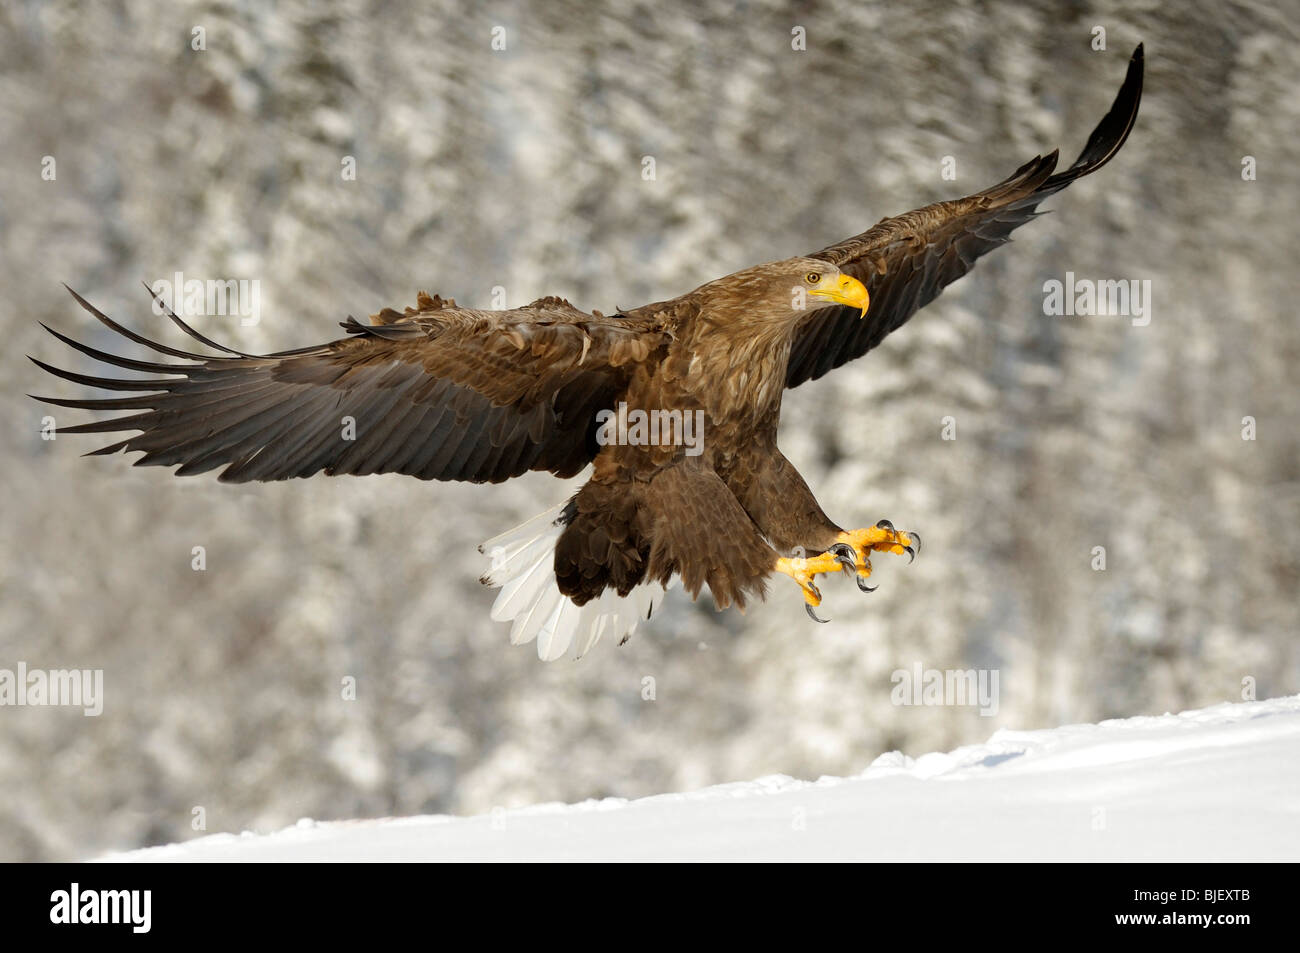 White-Tailed Eagle (Haliaeetus albicilla), adult in landing approach. - Stock Image